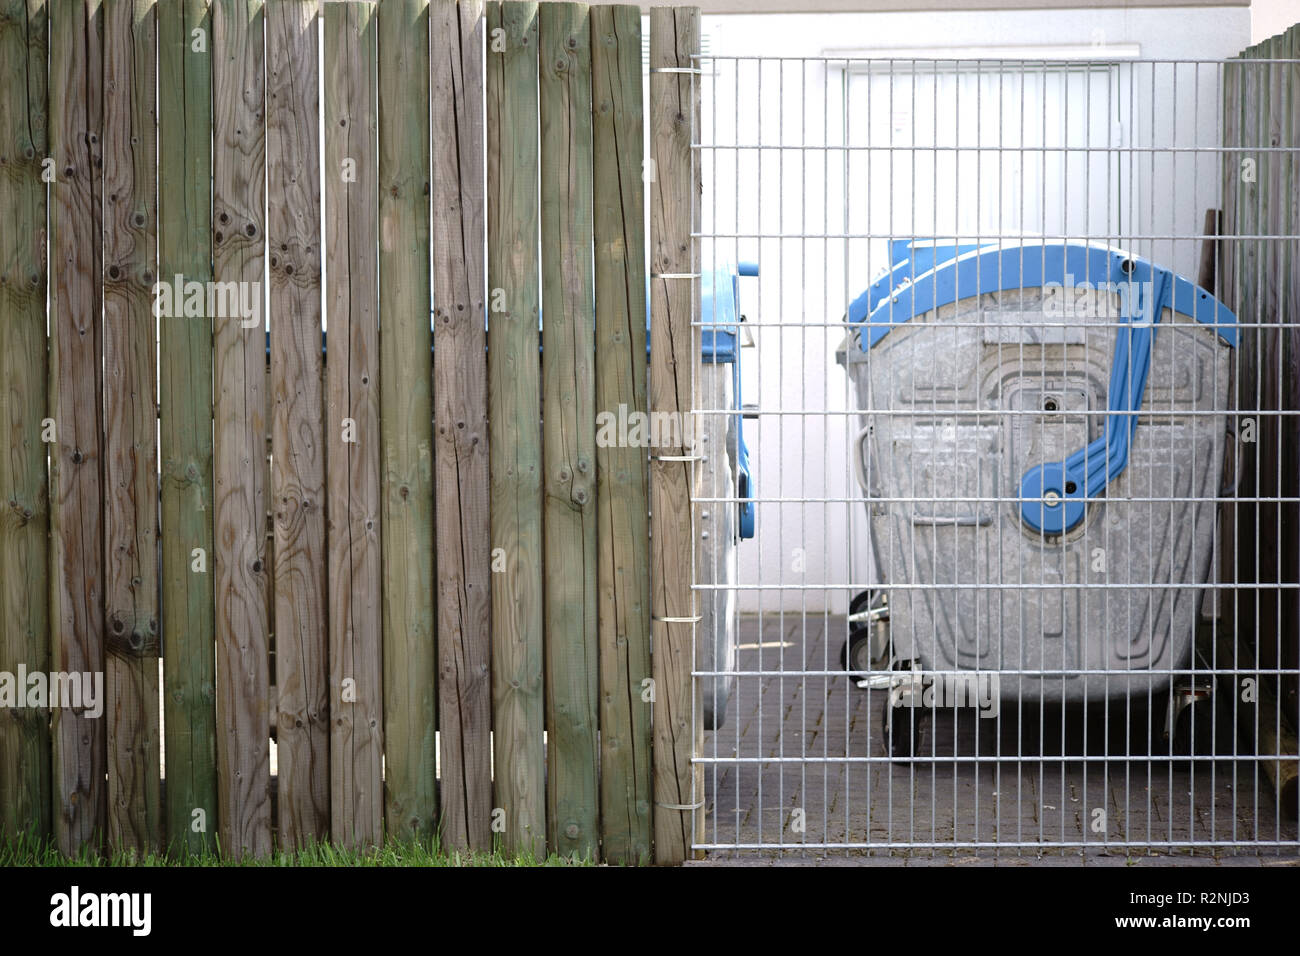 Trashcans arranged in a row stand behind a mesh fence in a closed off area, - Stock Image